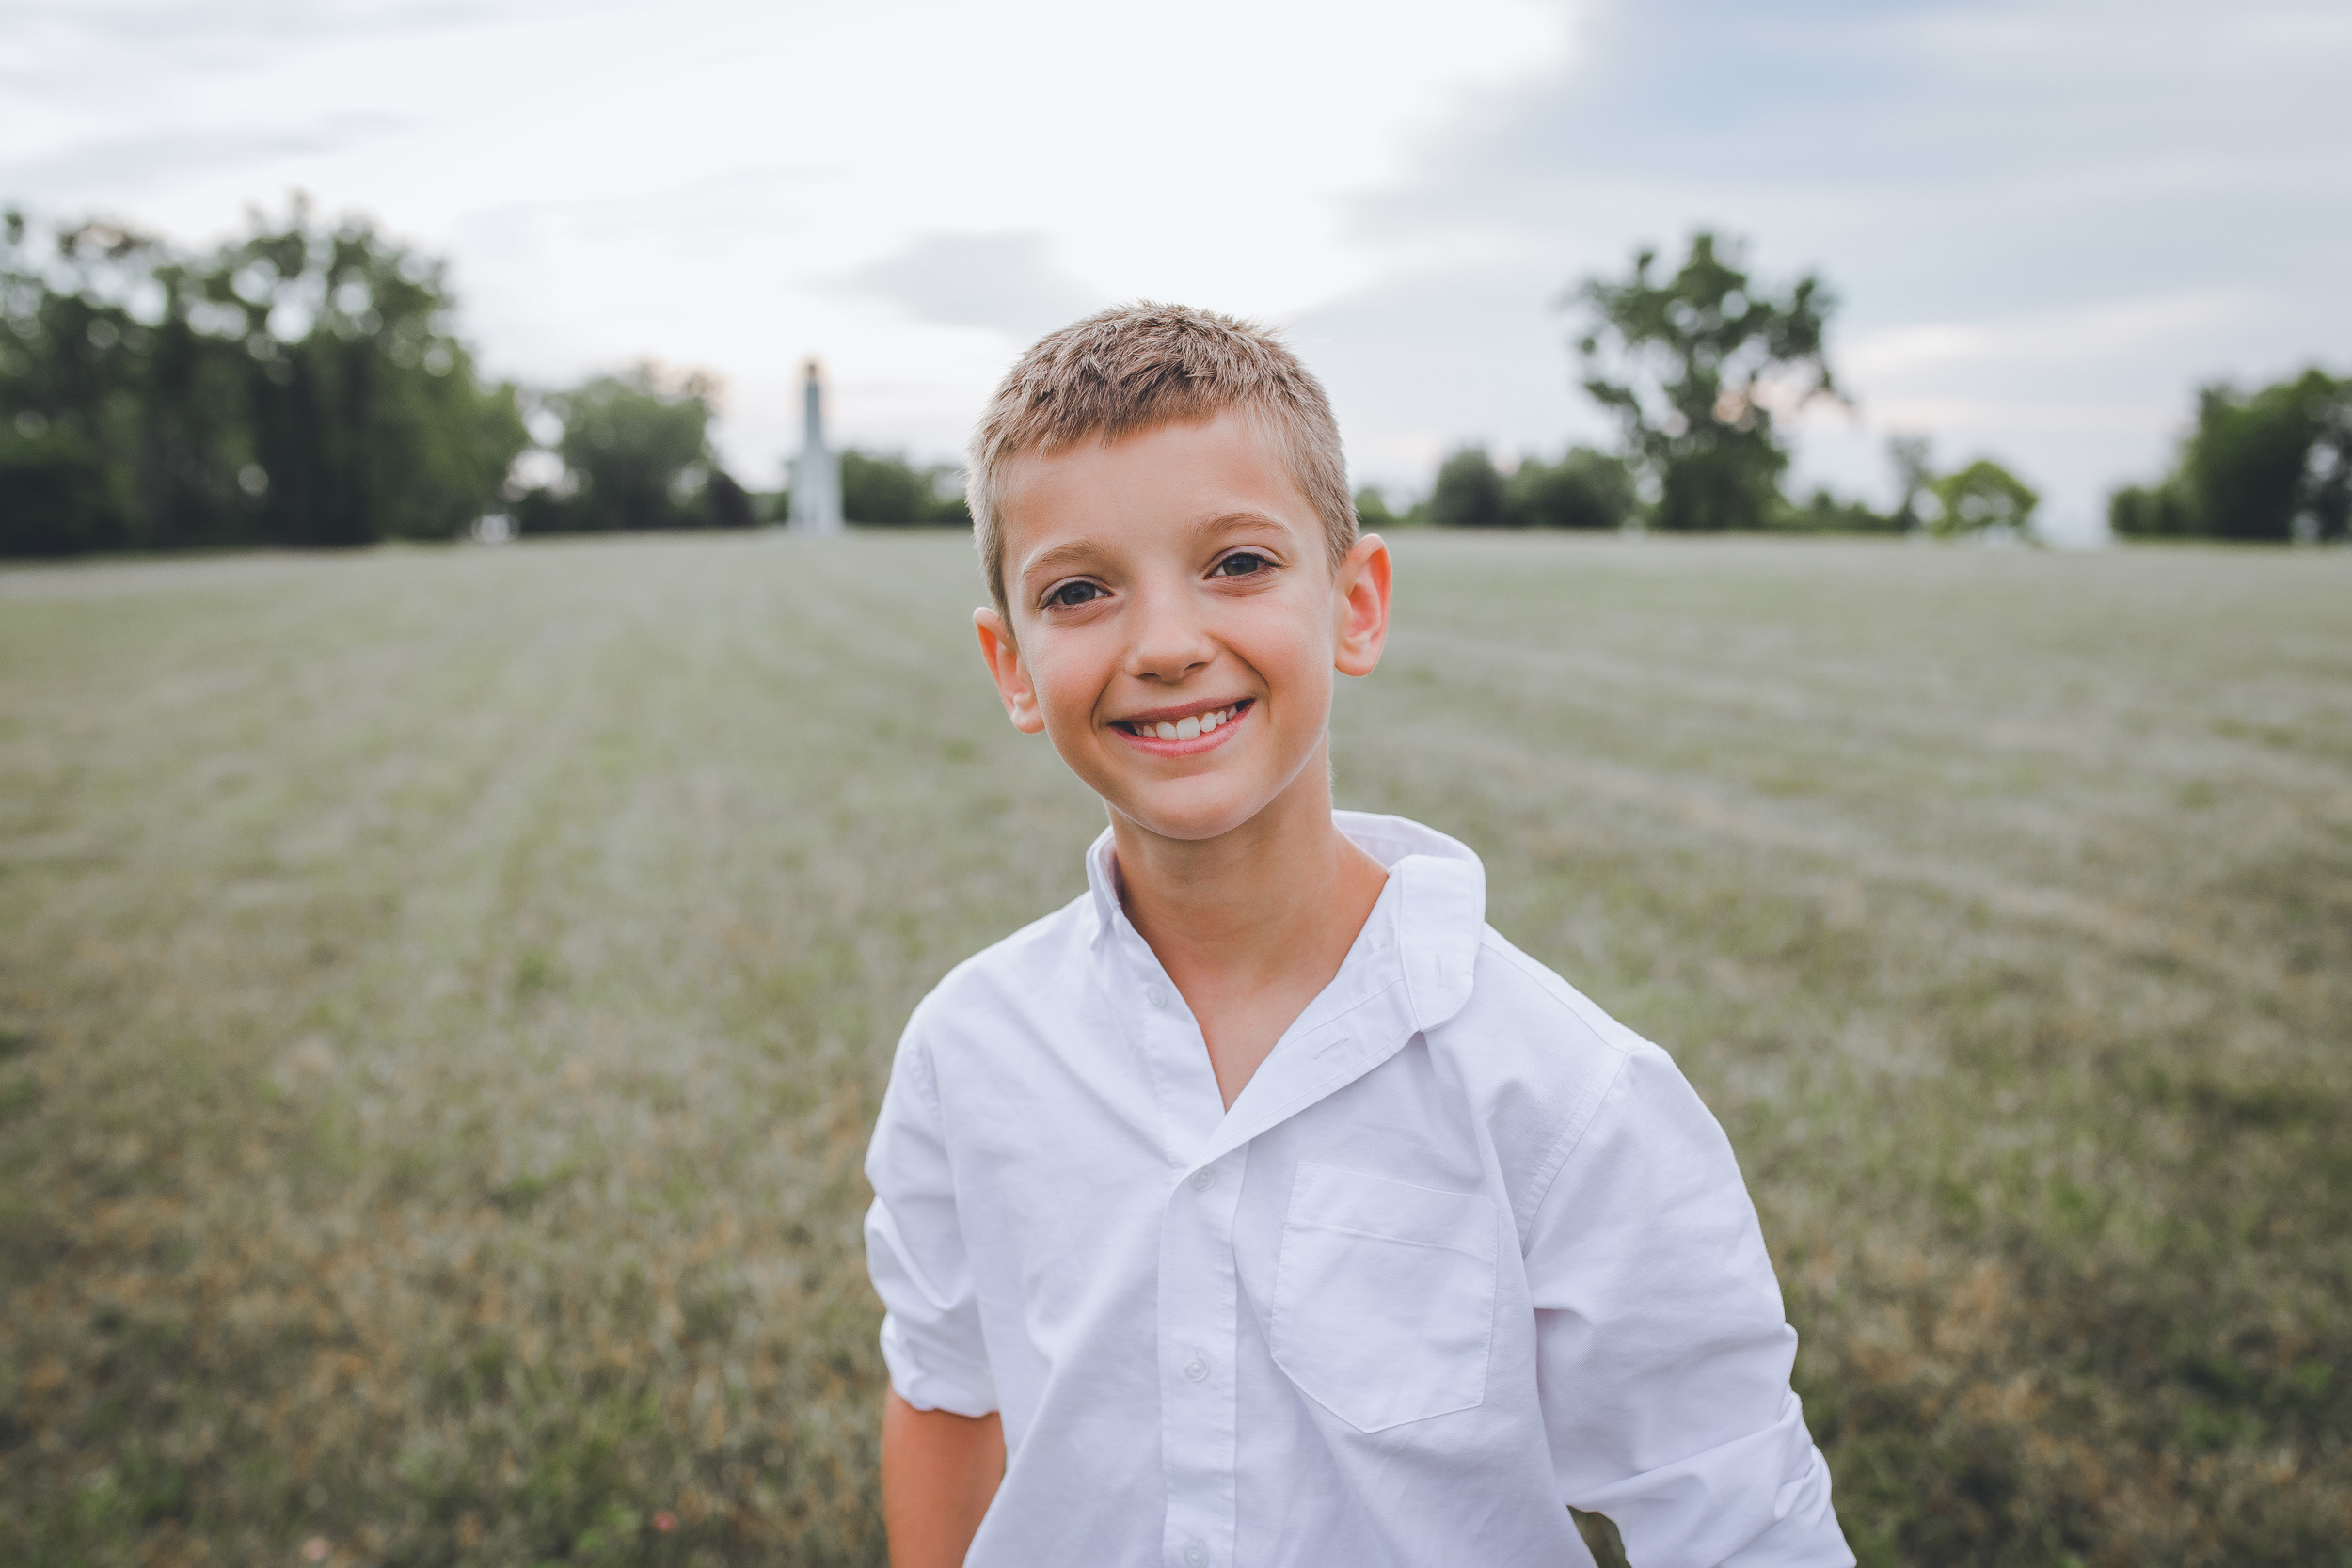 I would say that Noah, is a natural in front of the camera!